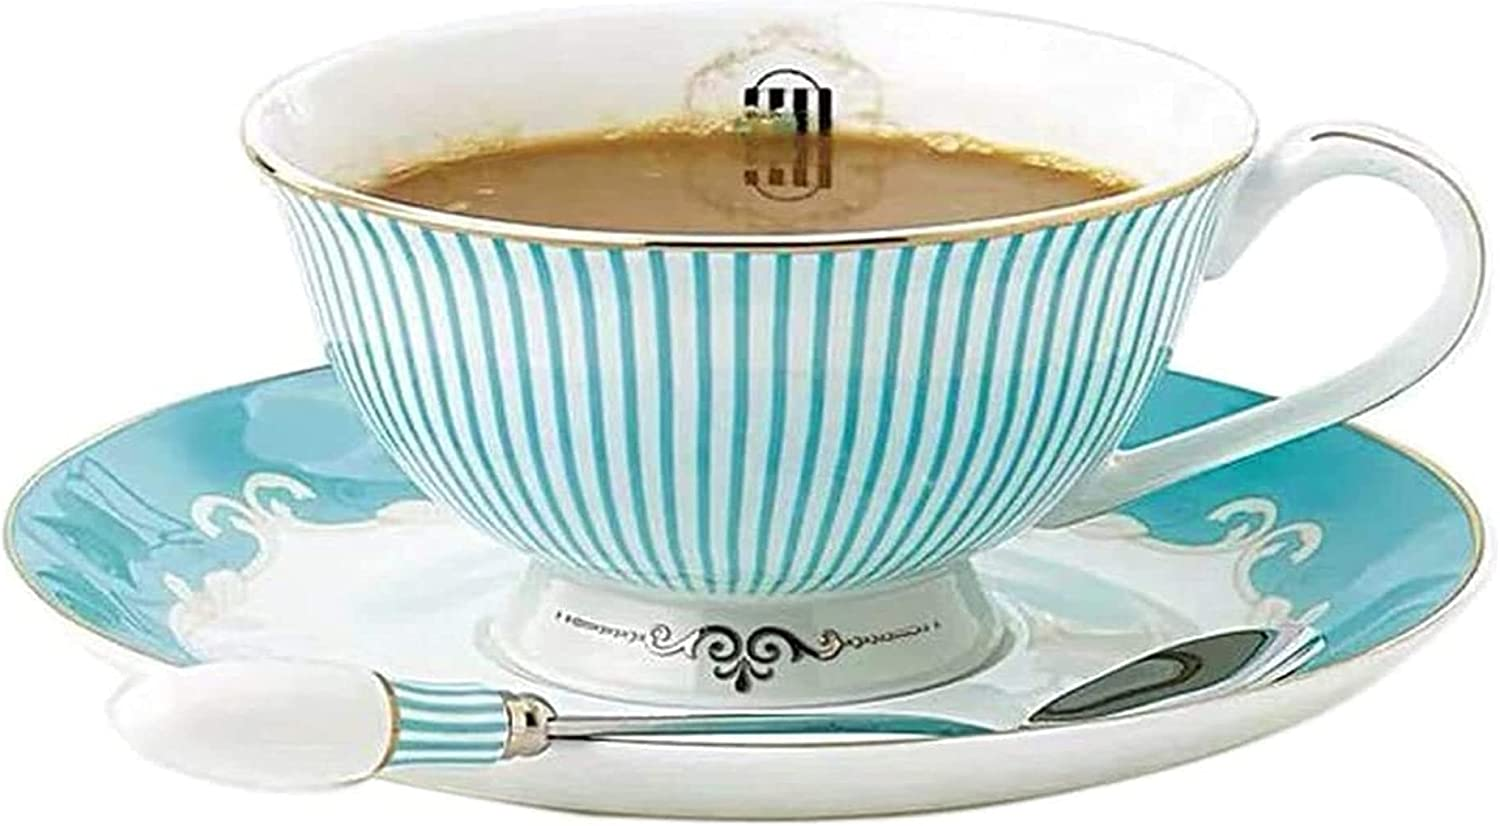 Cup Max 69% OFF Saucer Set Porcelain Tea Coffee for Afternoon Discount is also underway Breakfast